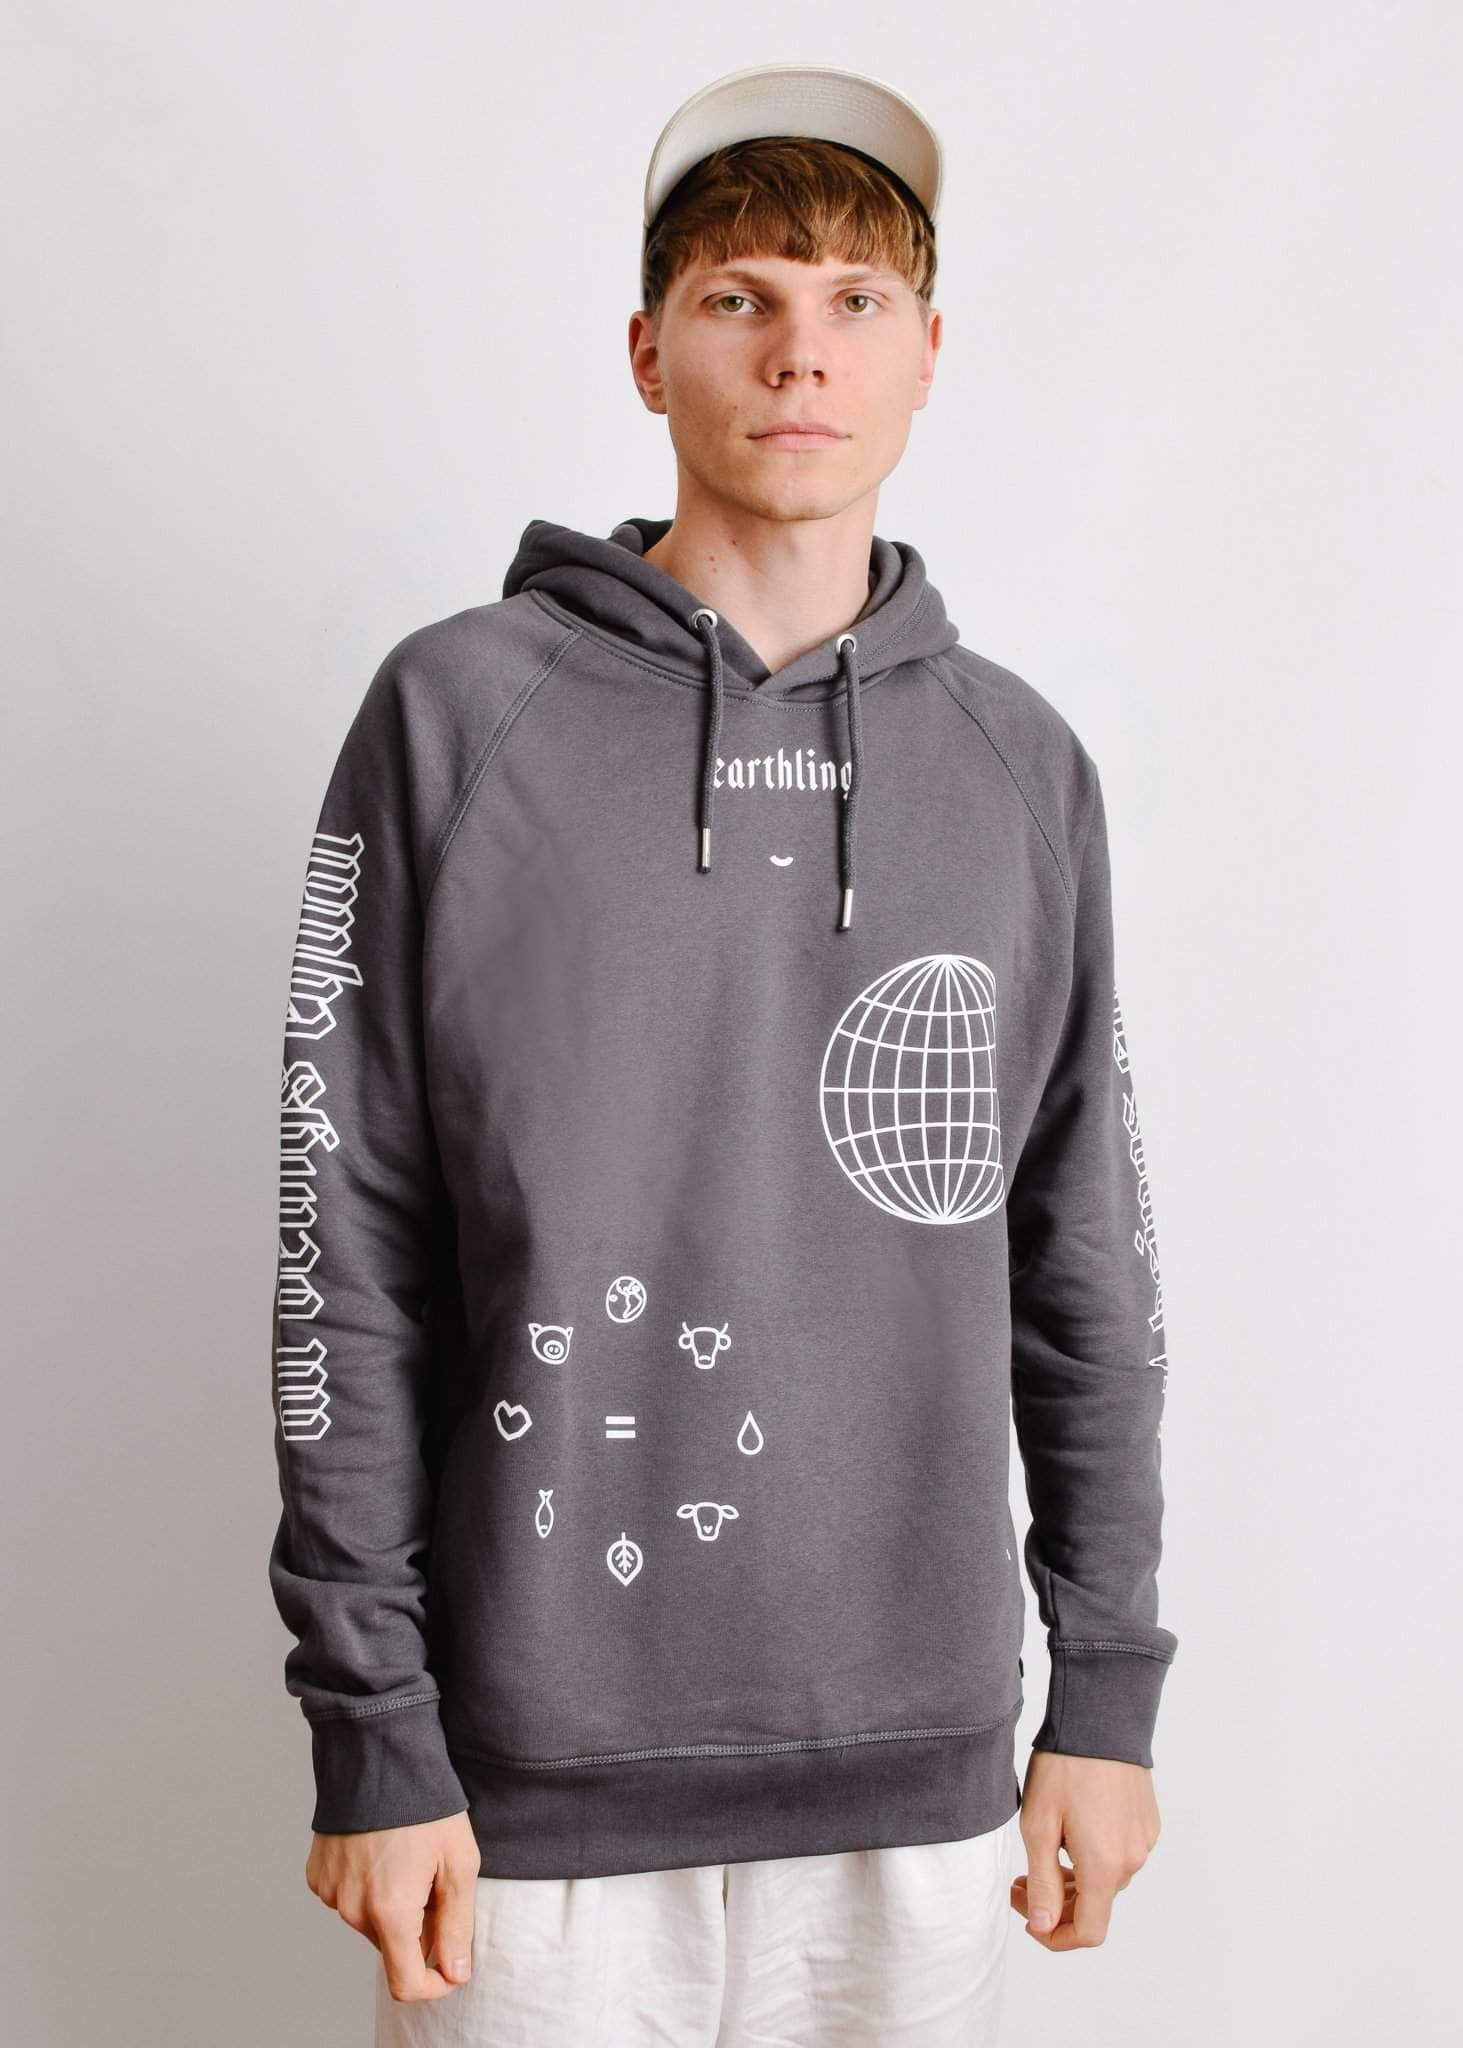 PLANT FACED CLOTHING: Hoodies - ERTHLNG - Hoodie - Charcoal - ORGANIC x RECYCLED, Vegan Clothing